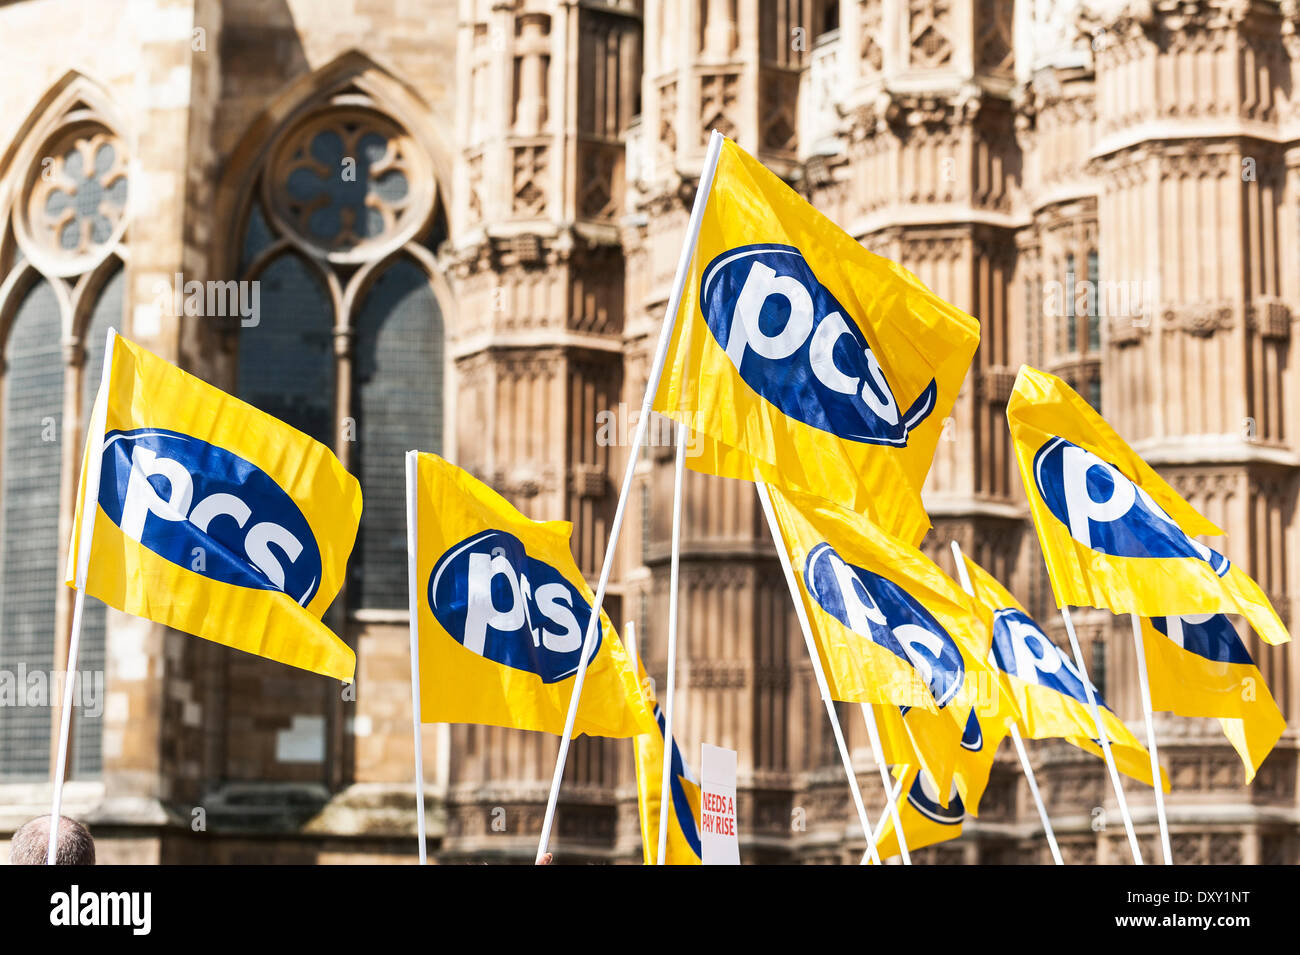 London, UK. 1st April 2014.  Flags of the trade union PCS held aloft outside the Houses of Parliament as part of the joint demonstration by probation officers and legal aid solicitors. Photographer: Gordon Scammell/Alamy Live News - Stock Image